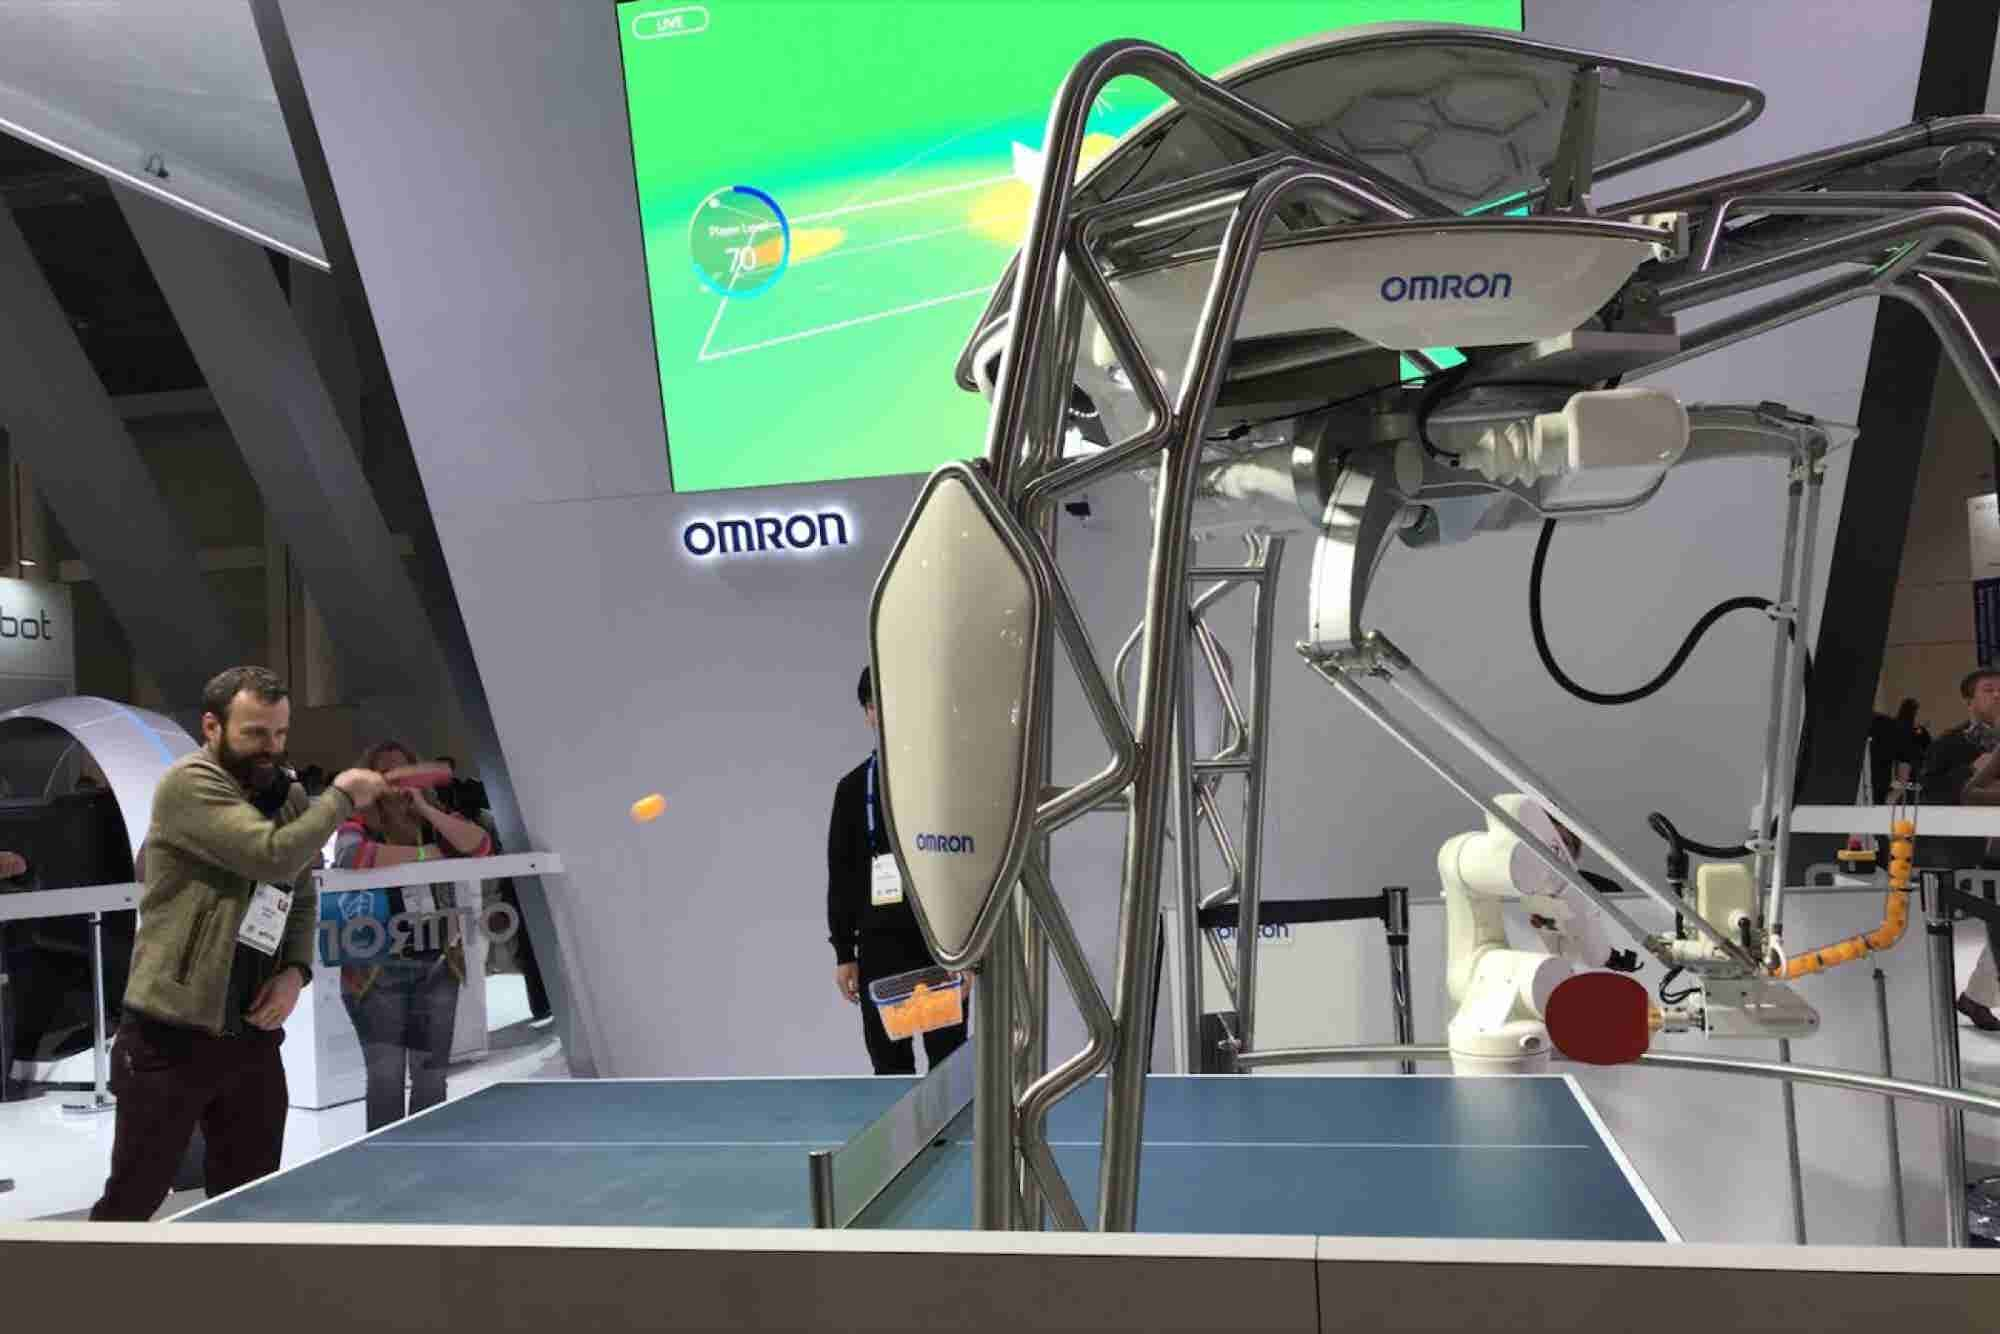 What This Ping-Pong Robot Tells Us About the Next Phase of Human-Robot...